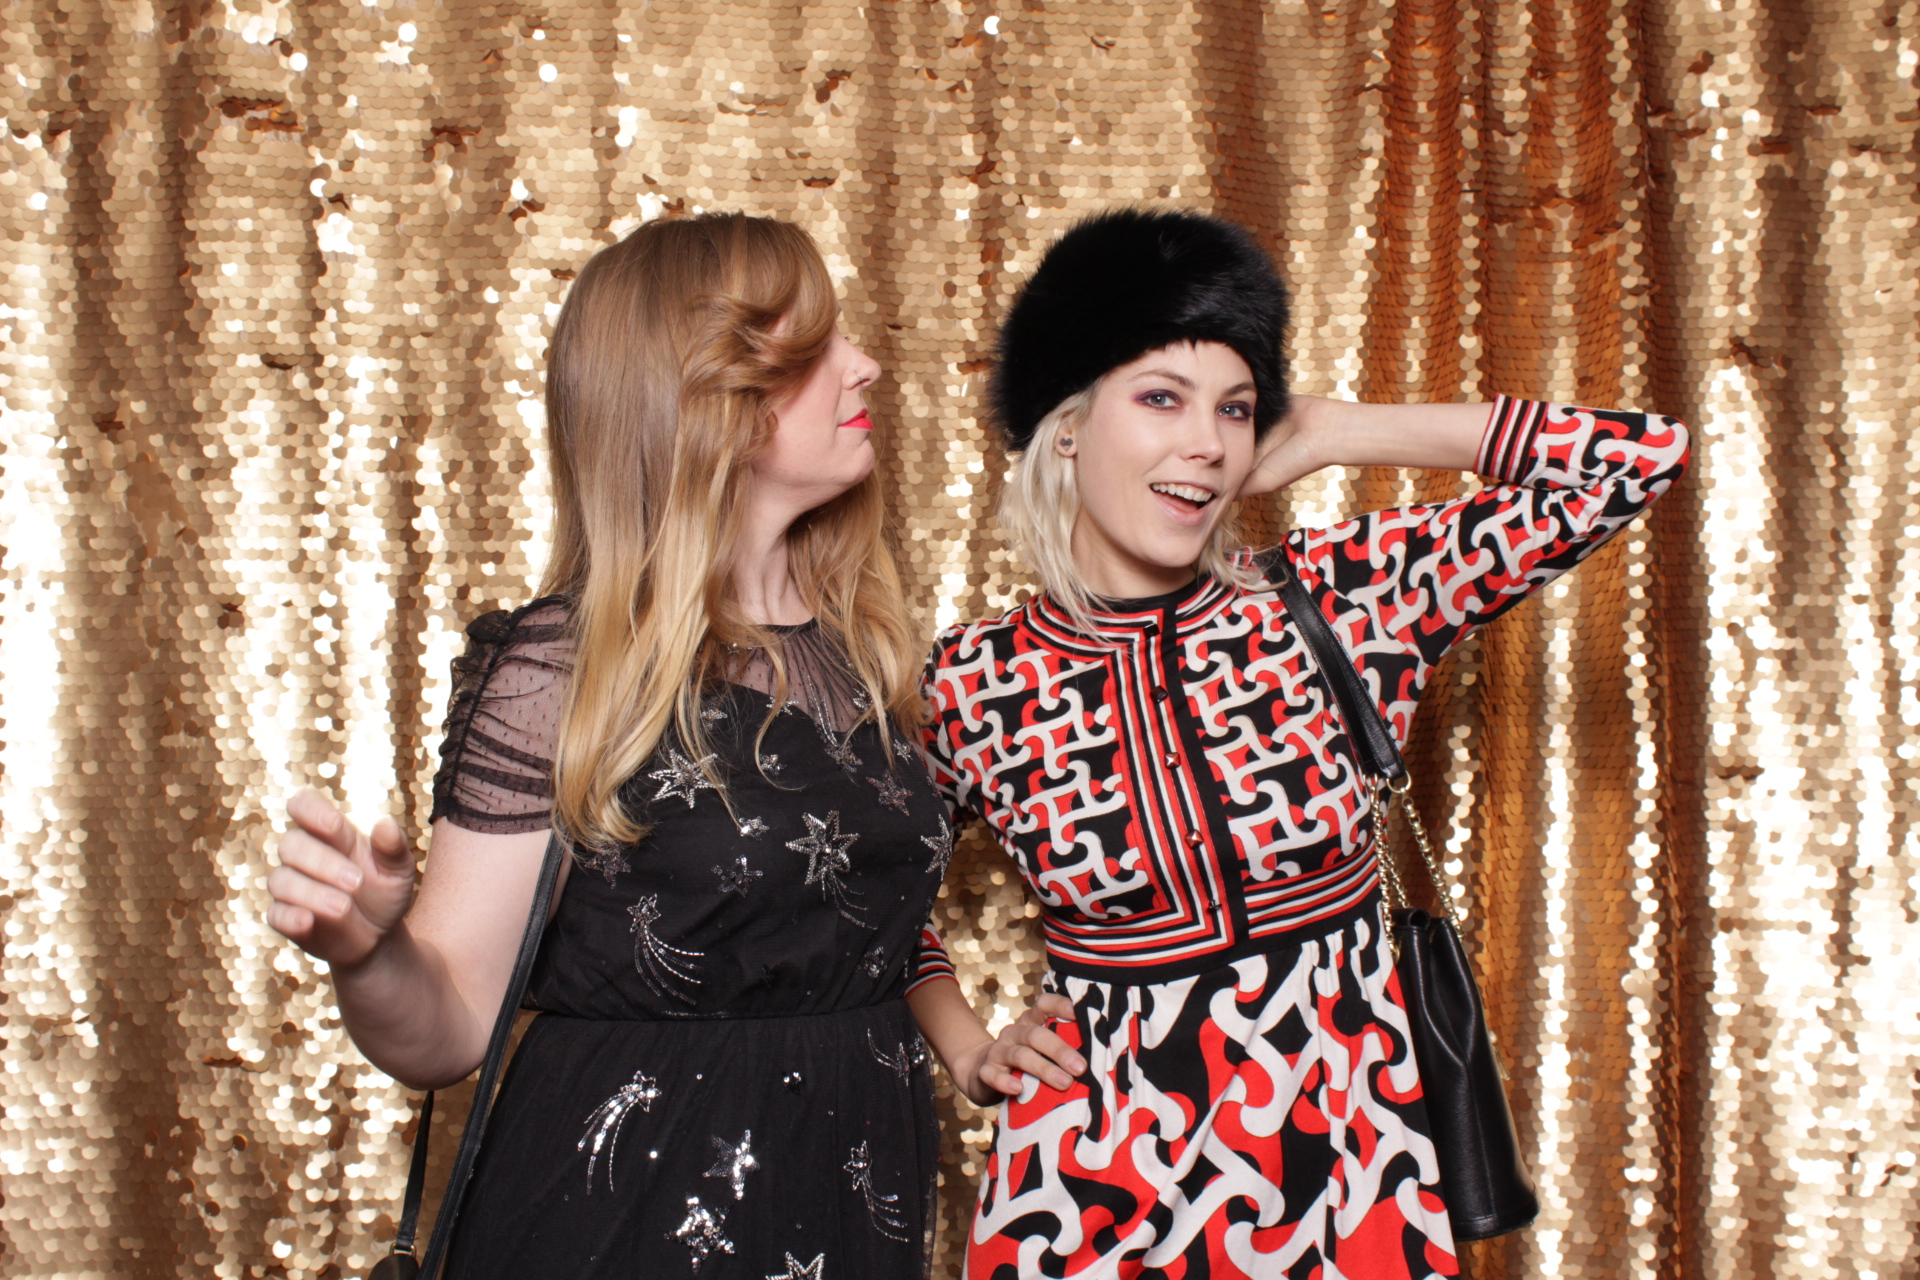 Minneapolis_Photo_Booth_rentals (15).jpg